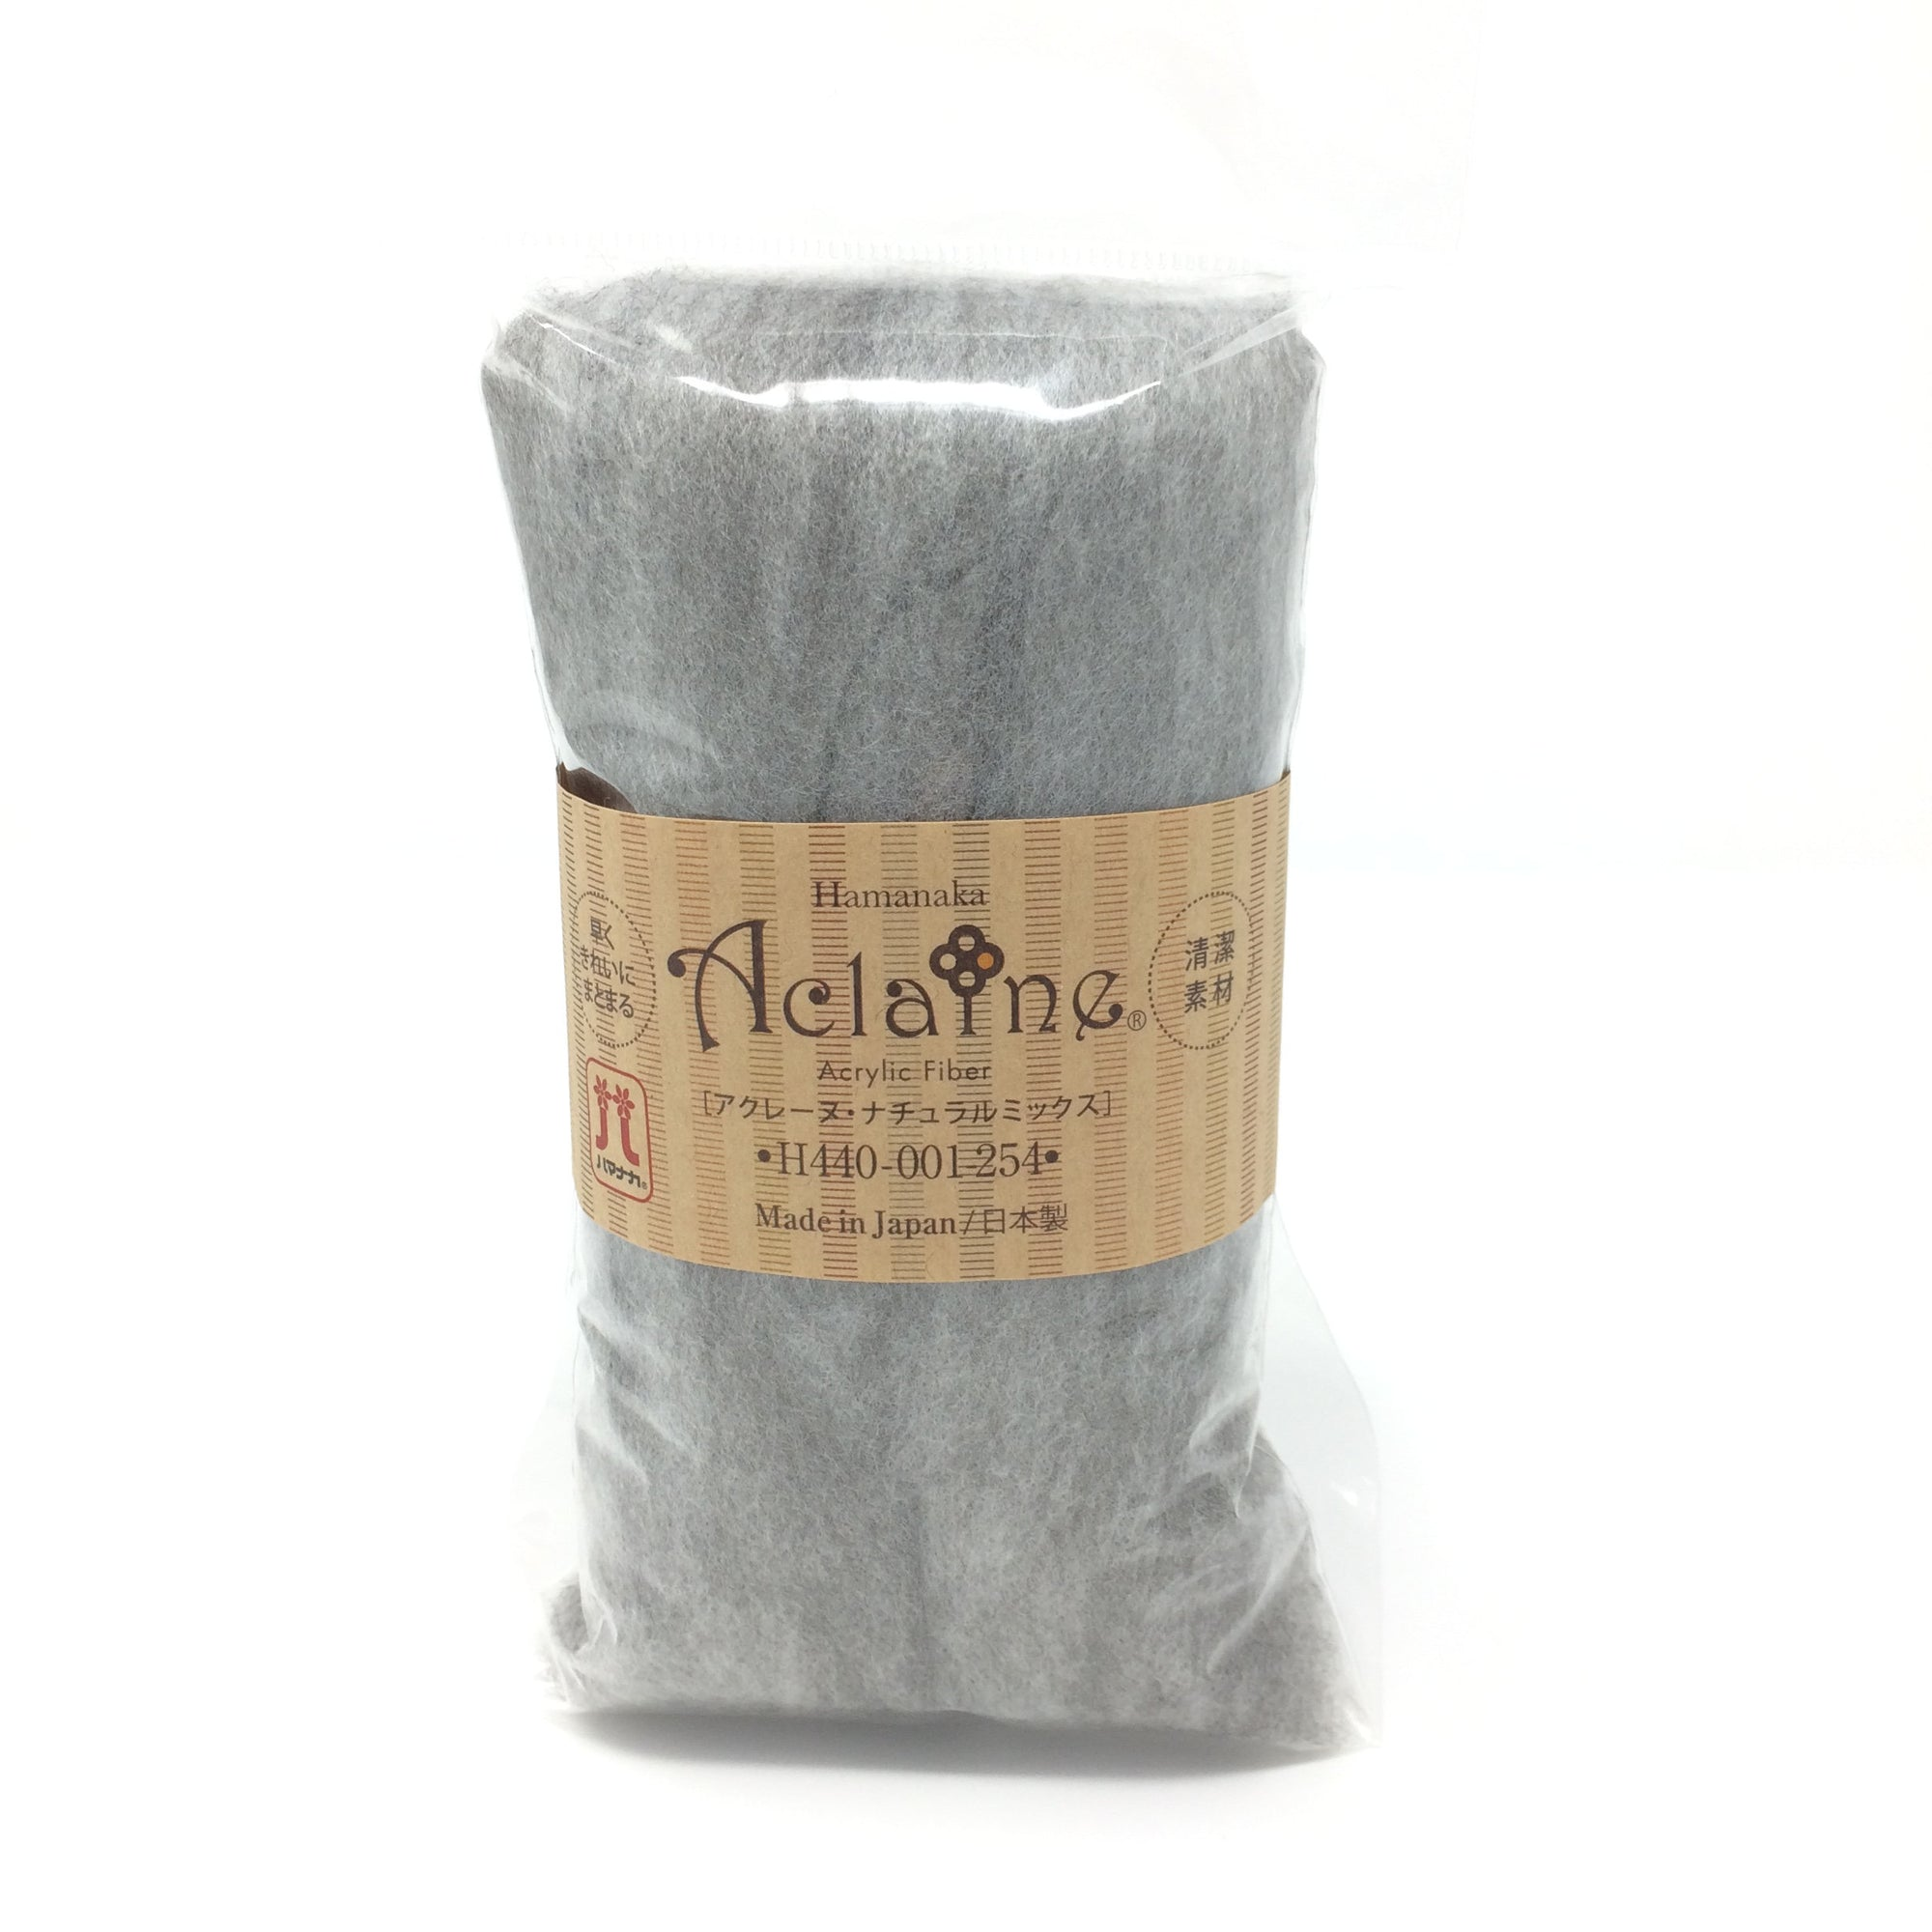 "Hamanaka Aclaine ""Natural Mix"" Acrylic Fibre - Grey 15g"